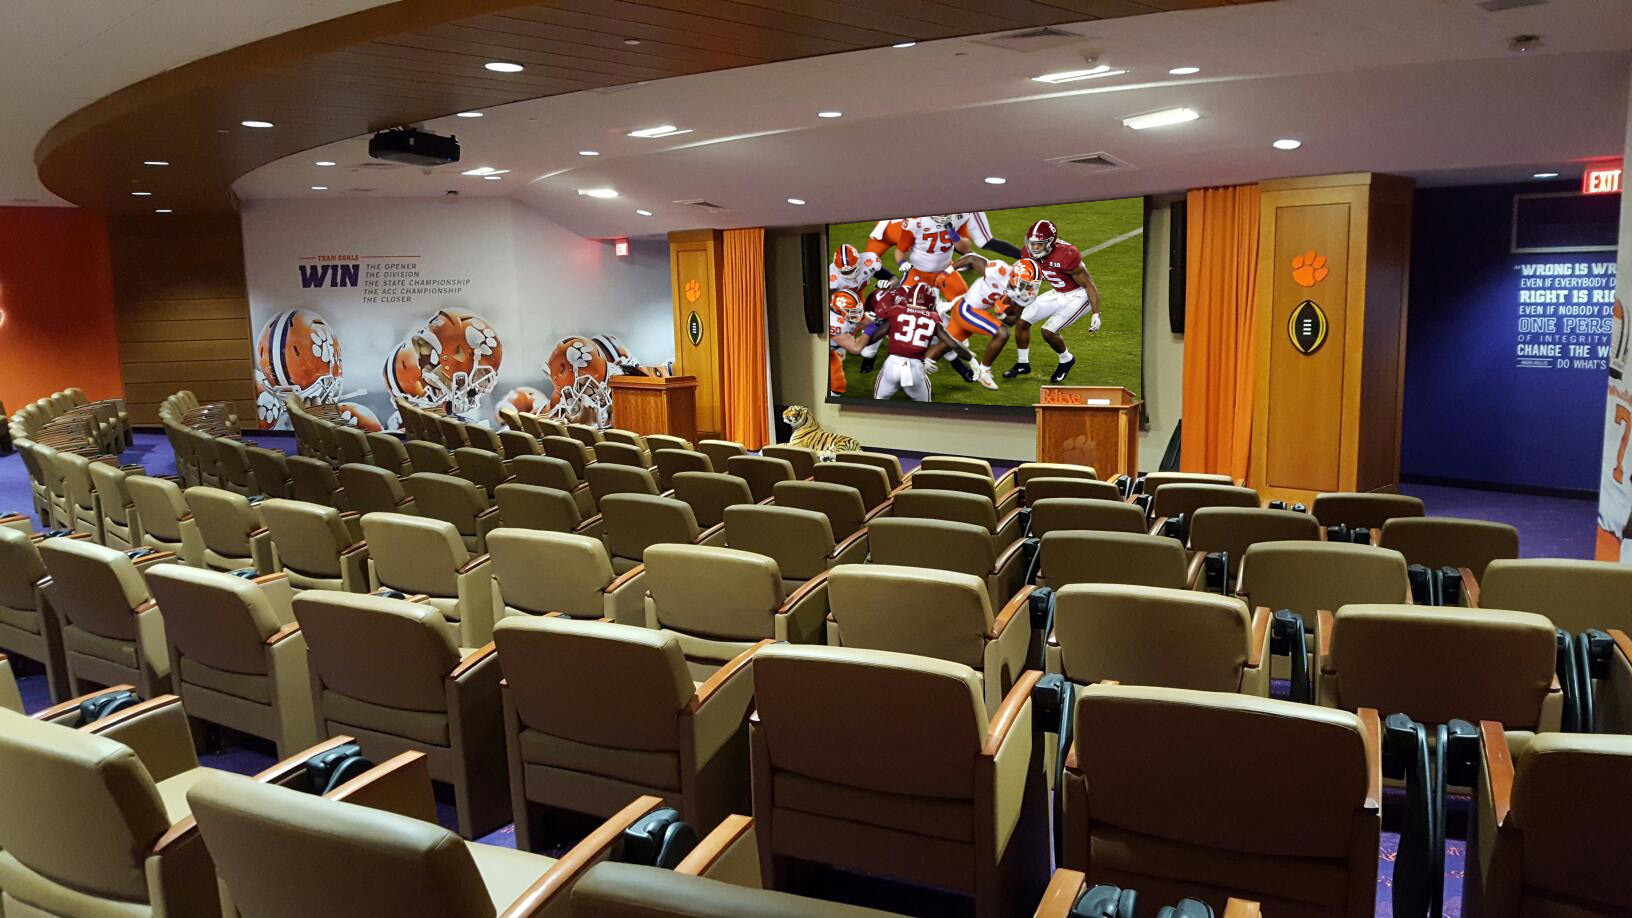 Clemson University, Allen N. Reeves Football Complex, Clemson Tigers, HOK, Training Facility, Football Operations Center, ACC Network, AV Solutions, AV Technology, Projection Systems, IPTV, Distributed TV, LED, Digital Signage, Broadcast Engineering, Broadcast and Production Controls, Infrastructure Cabling, Campus Fiber System, Audio, Lighting, AV Consultant, Owner's Representative, College Sports, College Football, NCAA Division 1, NCAA Champions, NCAA Championship, Locker Room AV